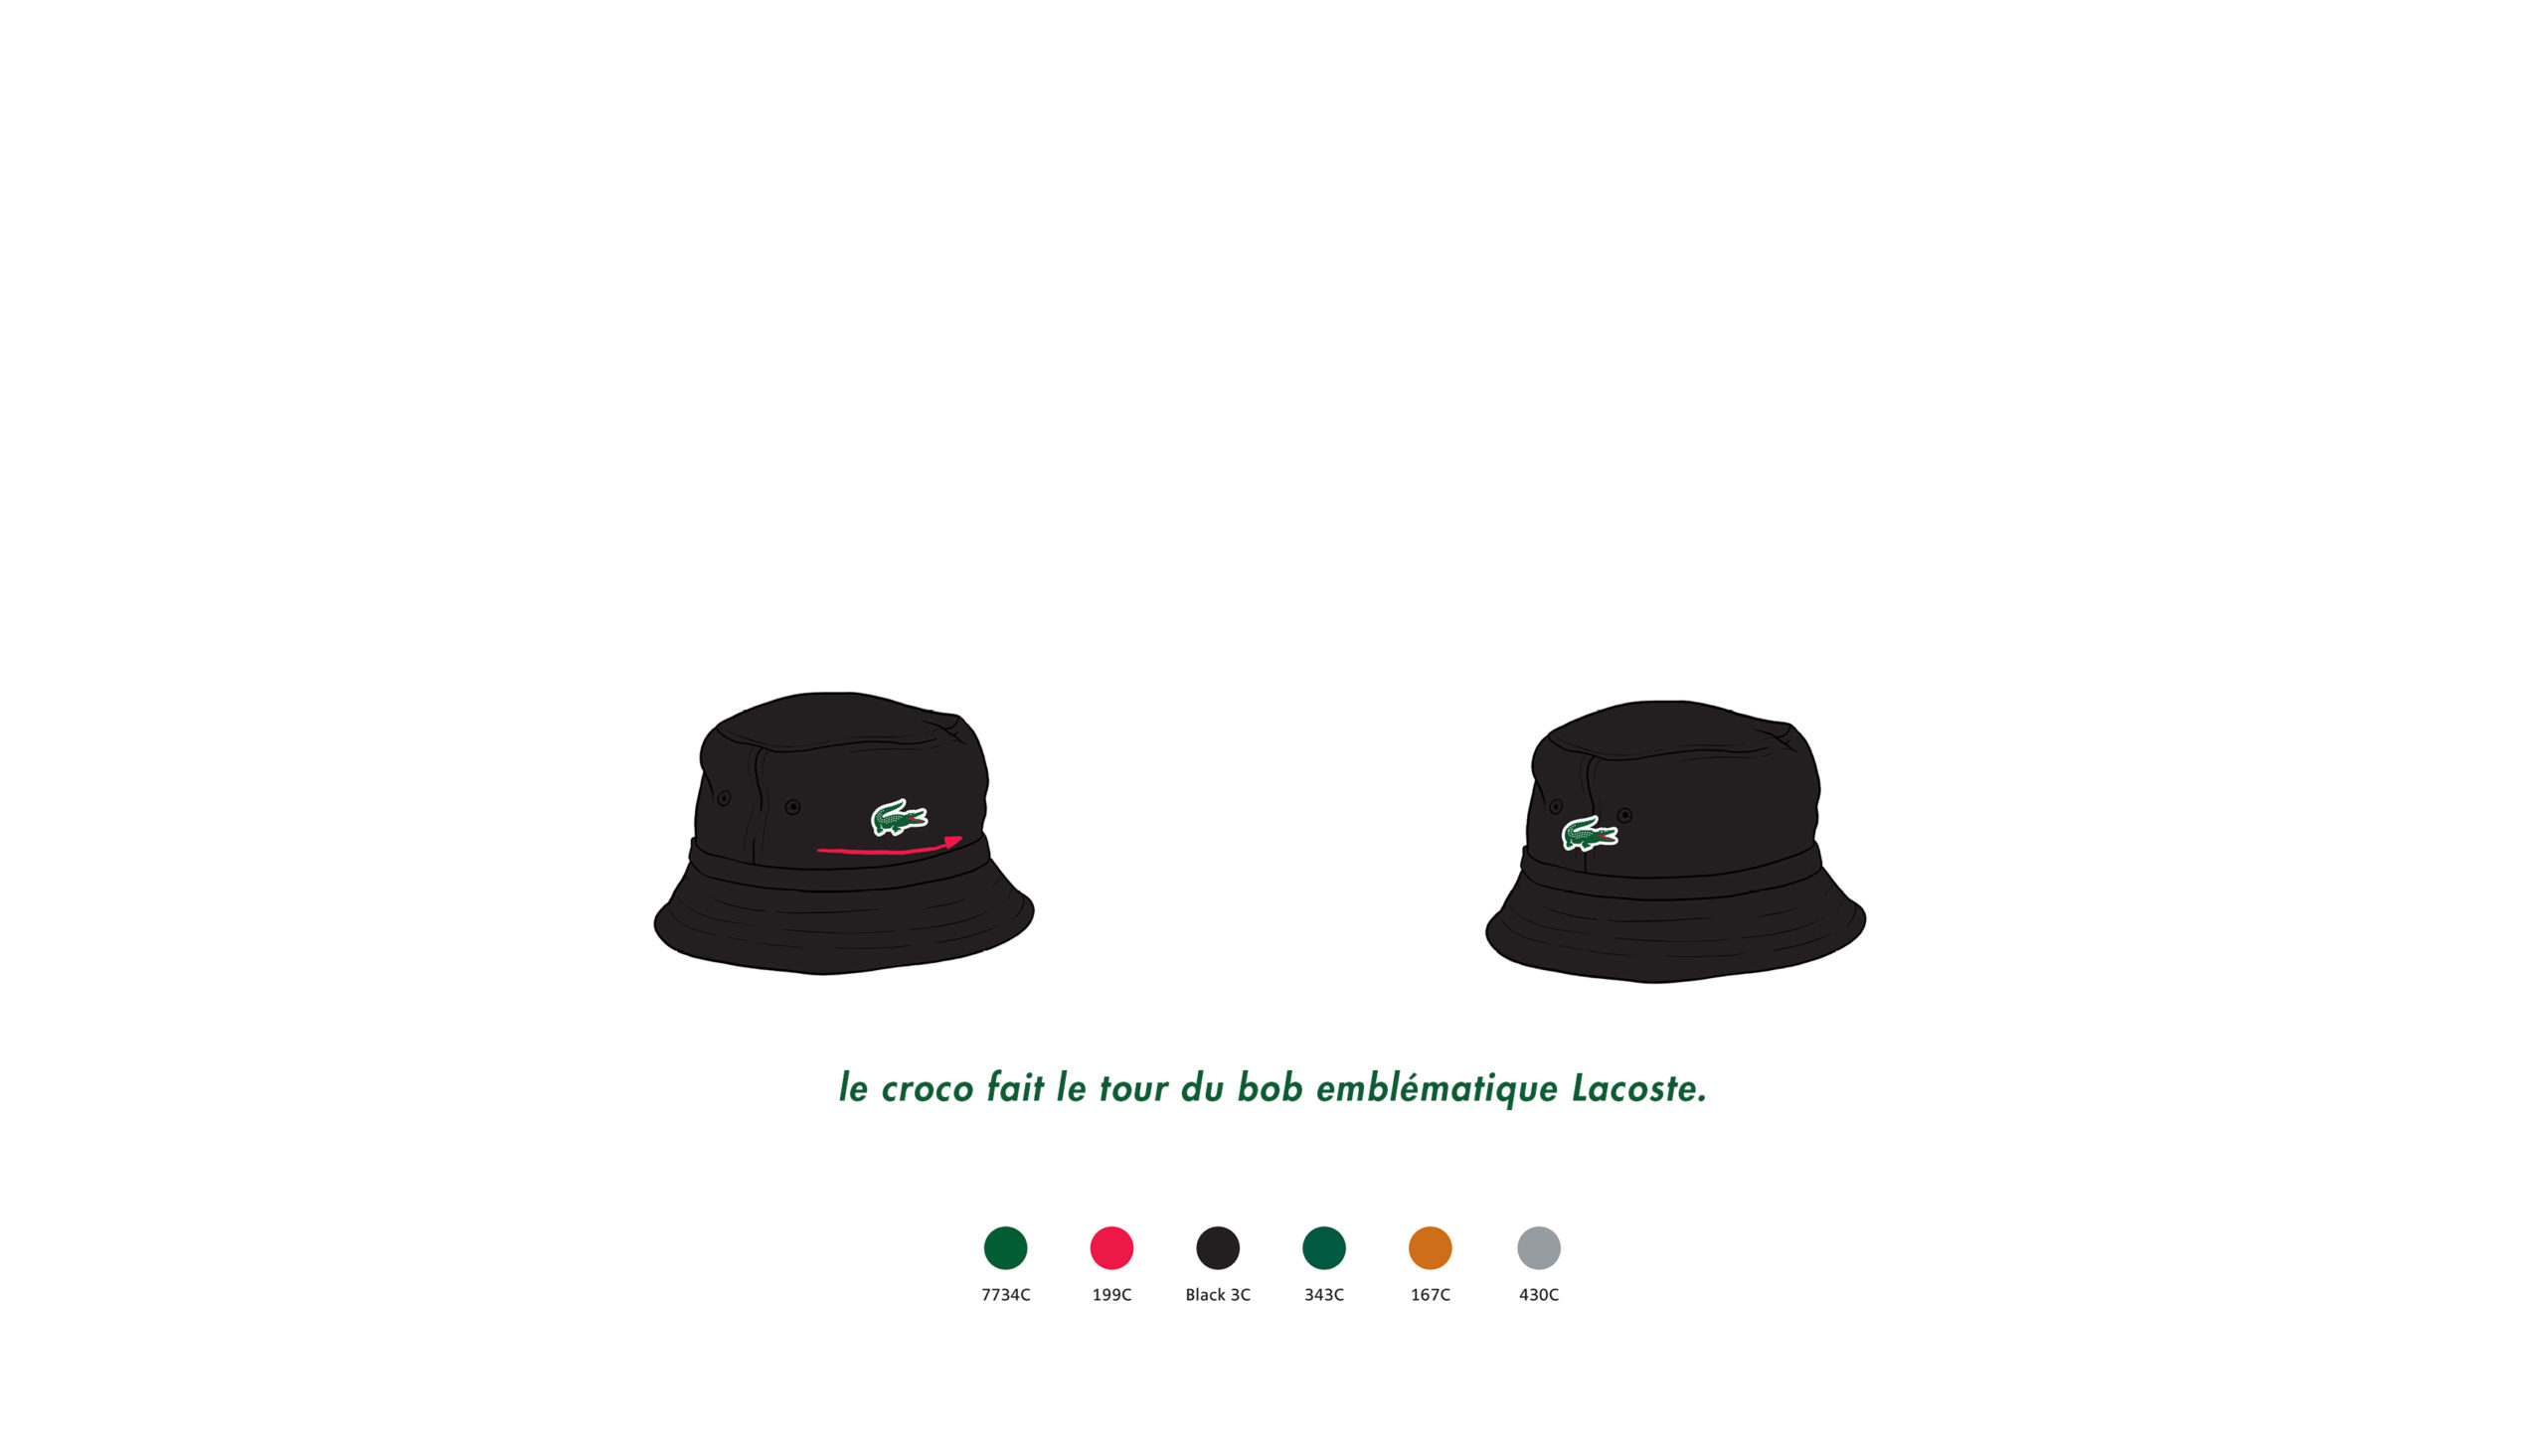 LACOSTE_STICKERS_HOBBYNOTE_R_0835